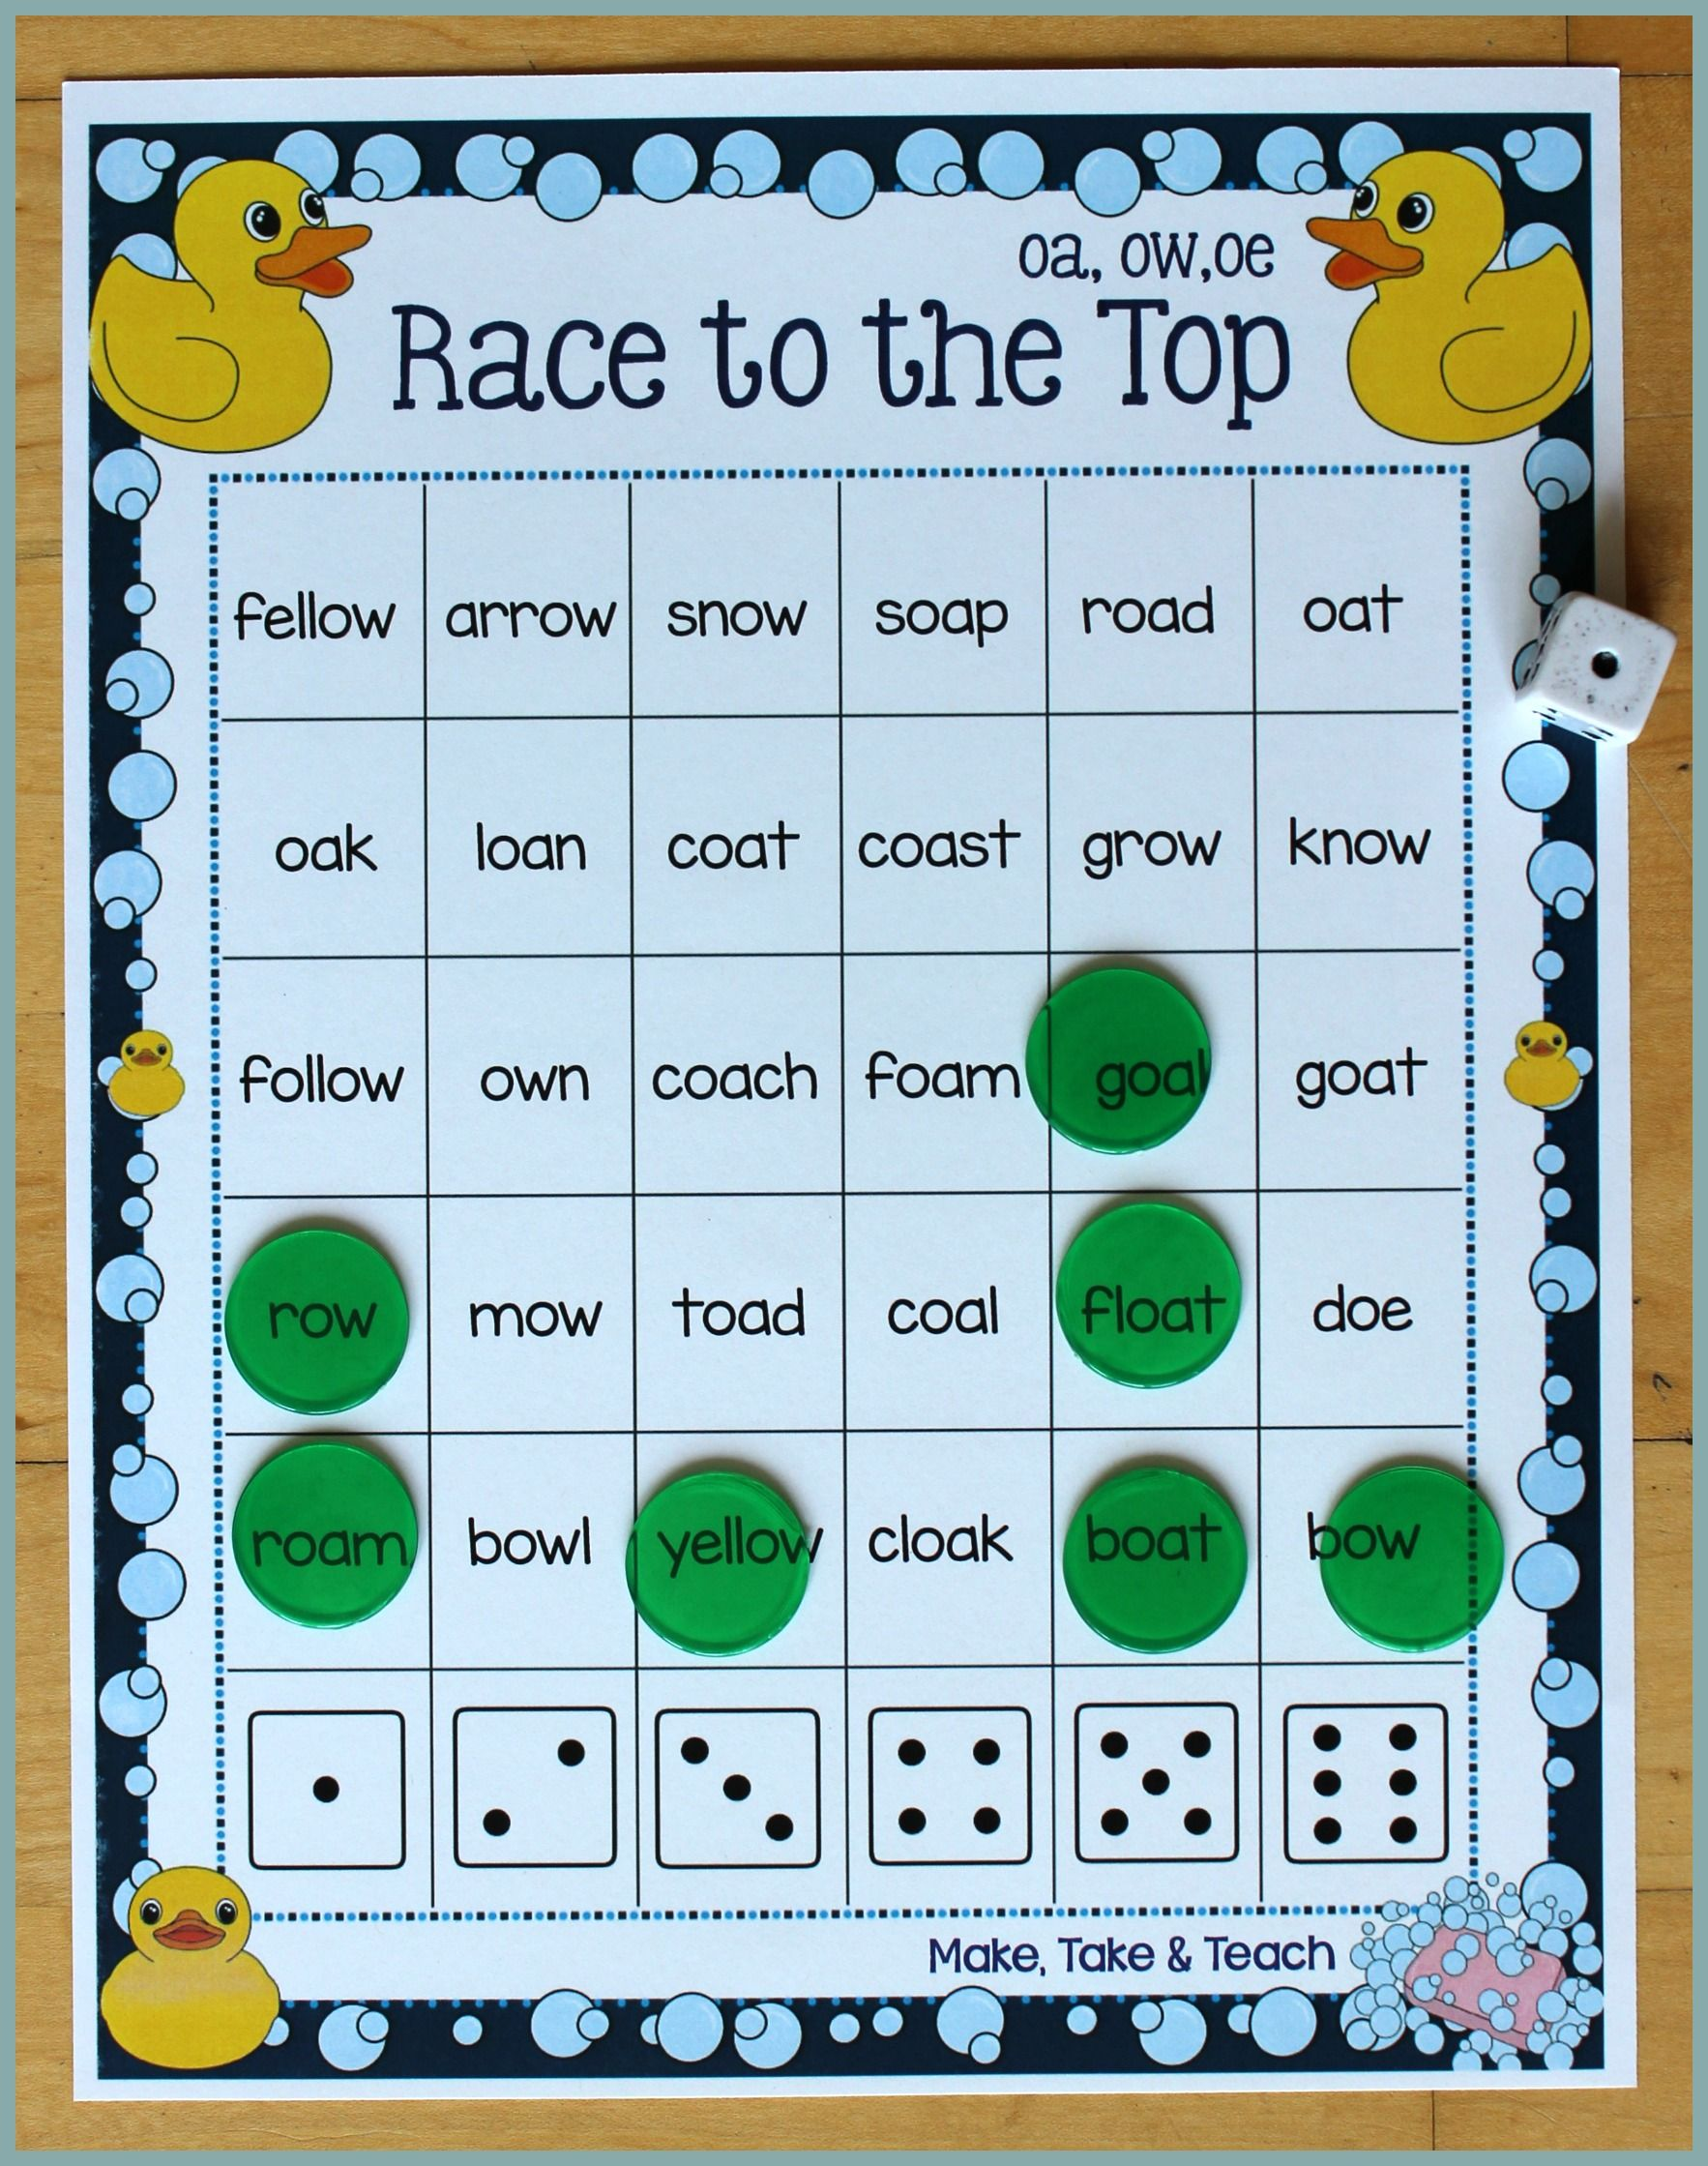 oa ow oe activities sight word activities pinterest activities phonics and literacy. Black Bedroom Furniture Sets. Home Design Ideas